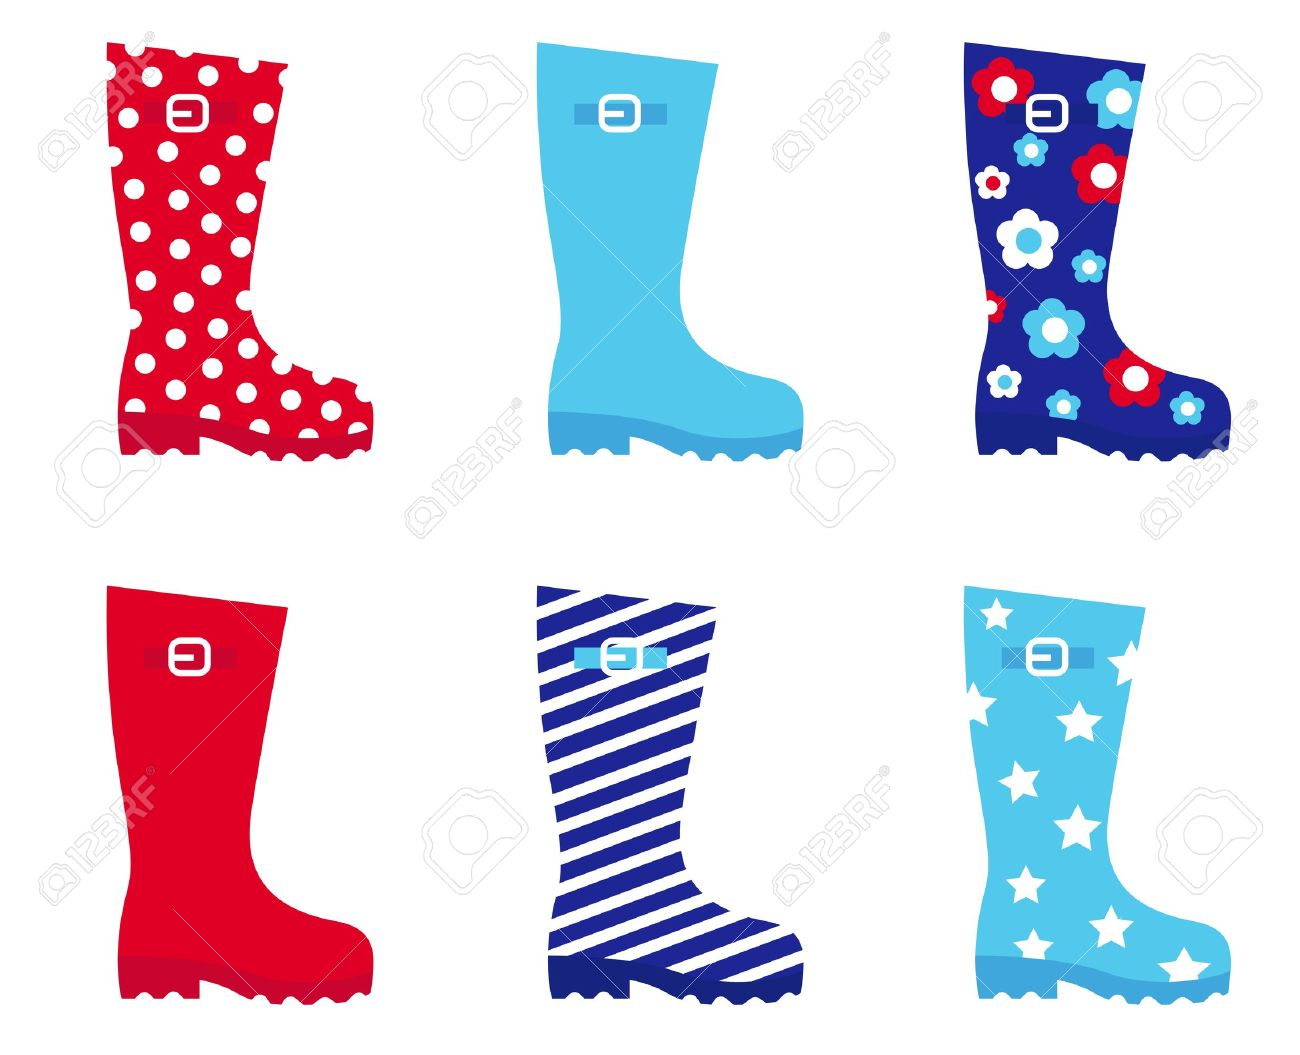 Collecton of wellies boots accessories. Vector illustration. - 10841115